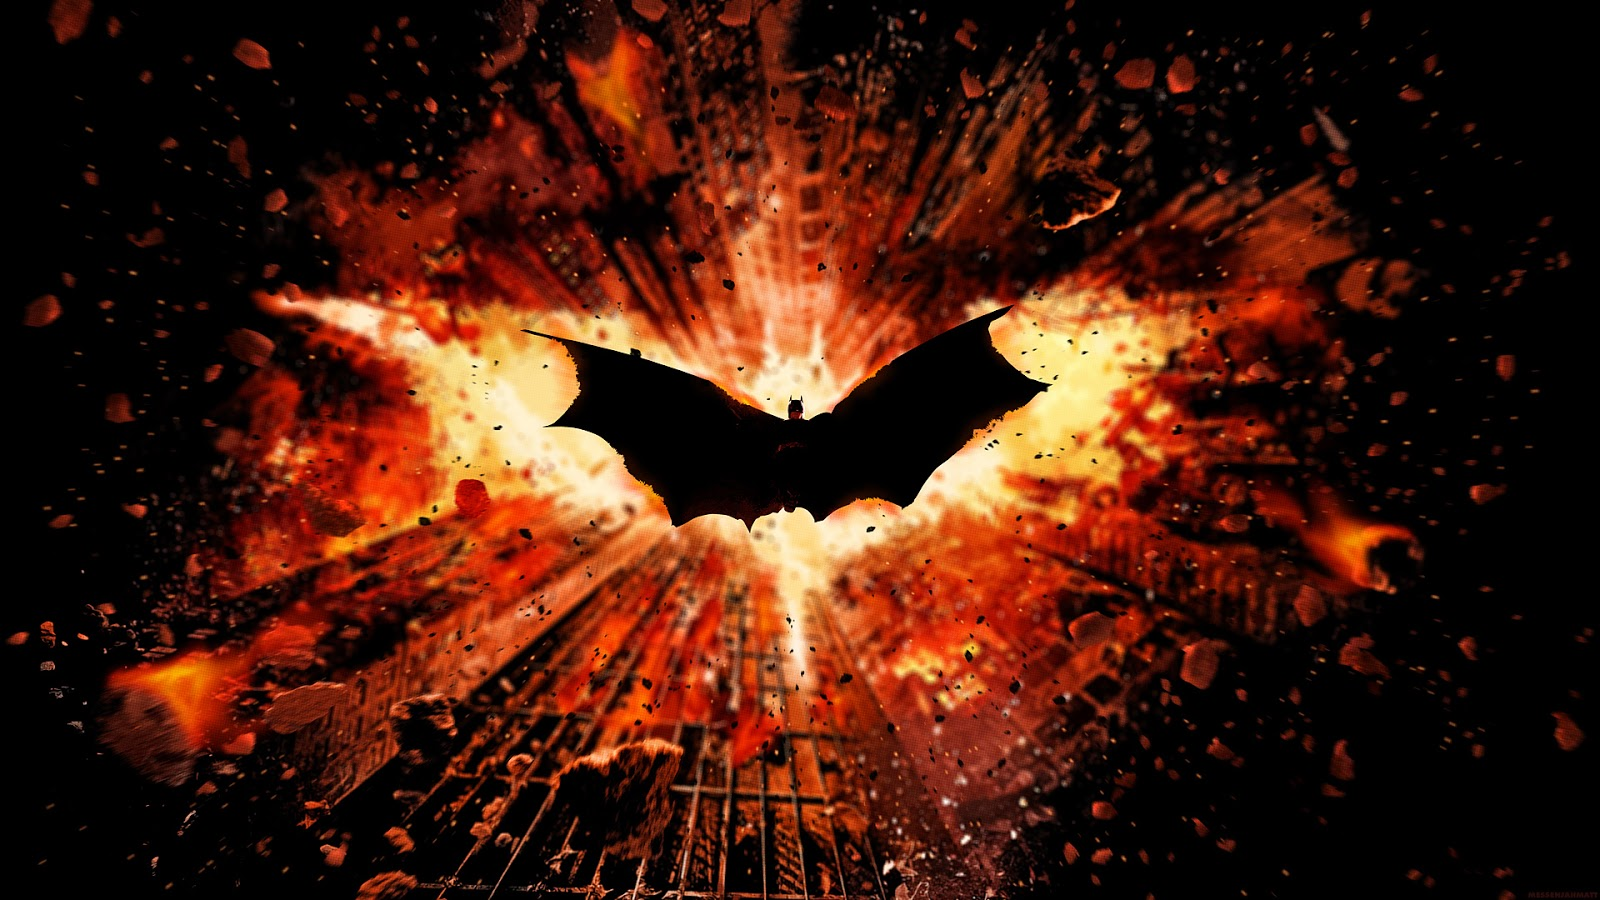 Batman the dark knight rises trailer latino dating 7